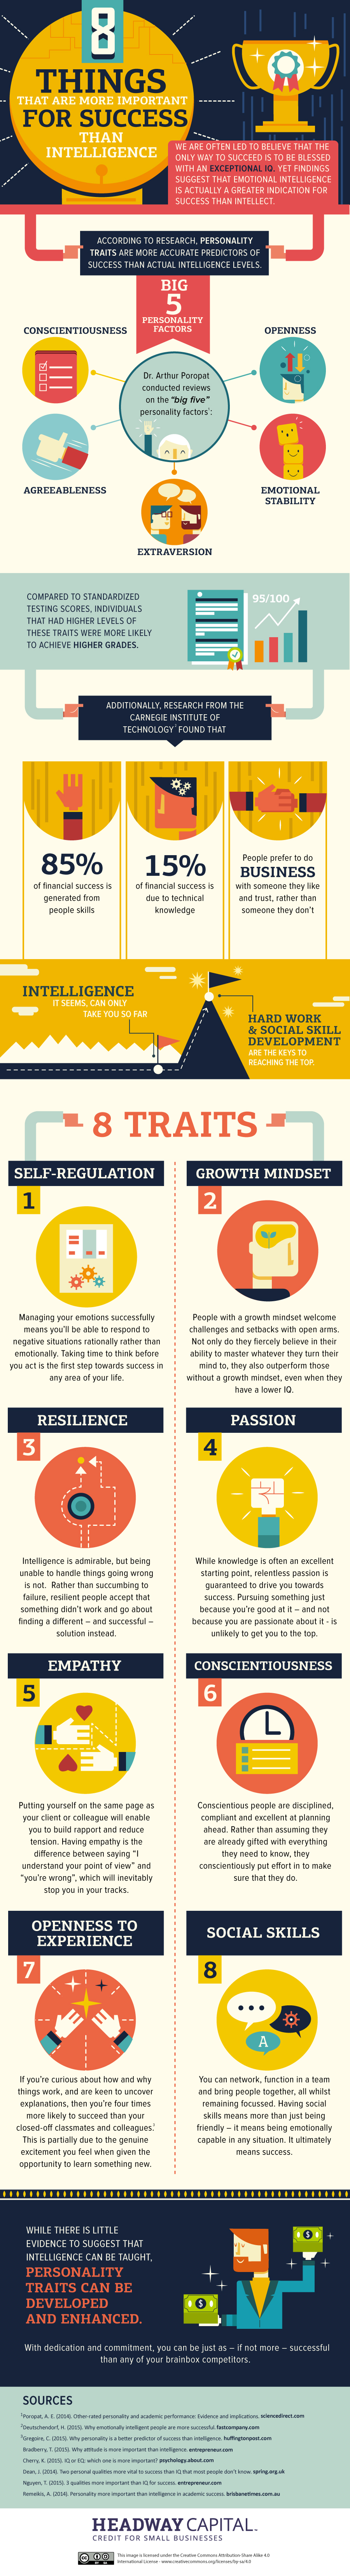 8 Things That are More Important for Success Than Intelligence